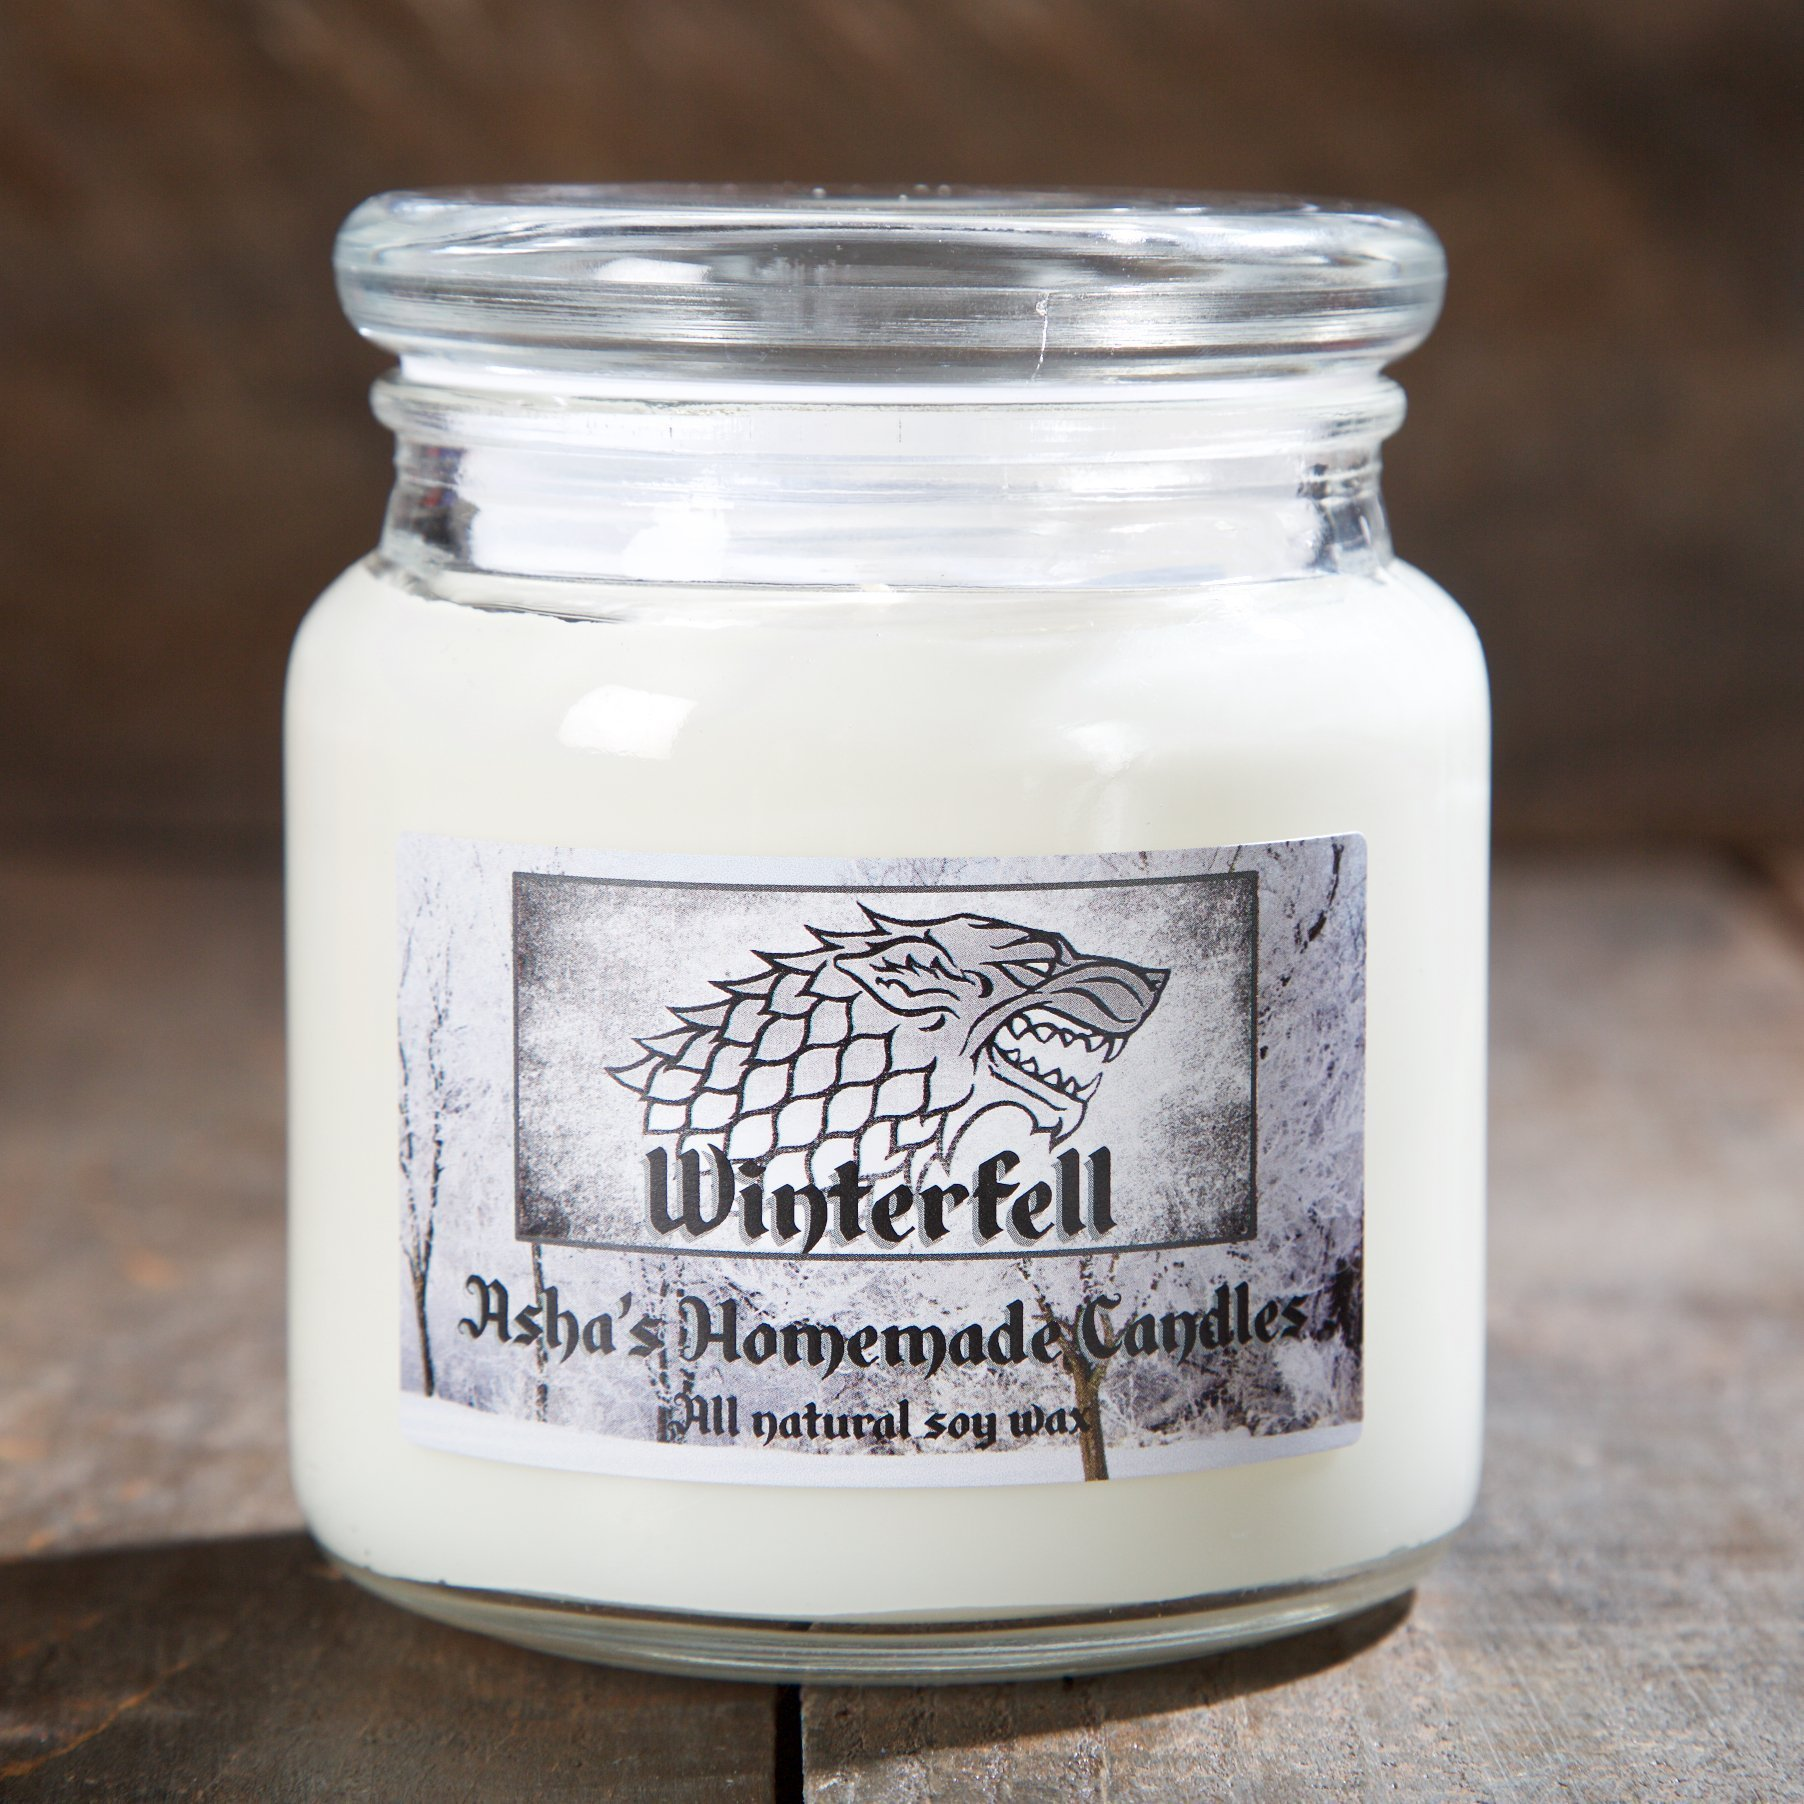 Game of Thrones Soy Candle - House Stark Winterfell - 16 oz. Apothecary Jar